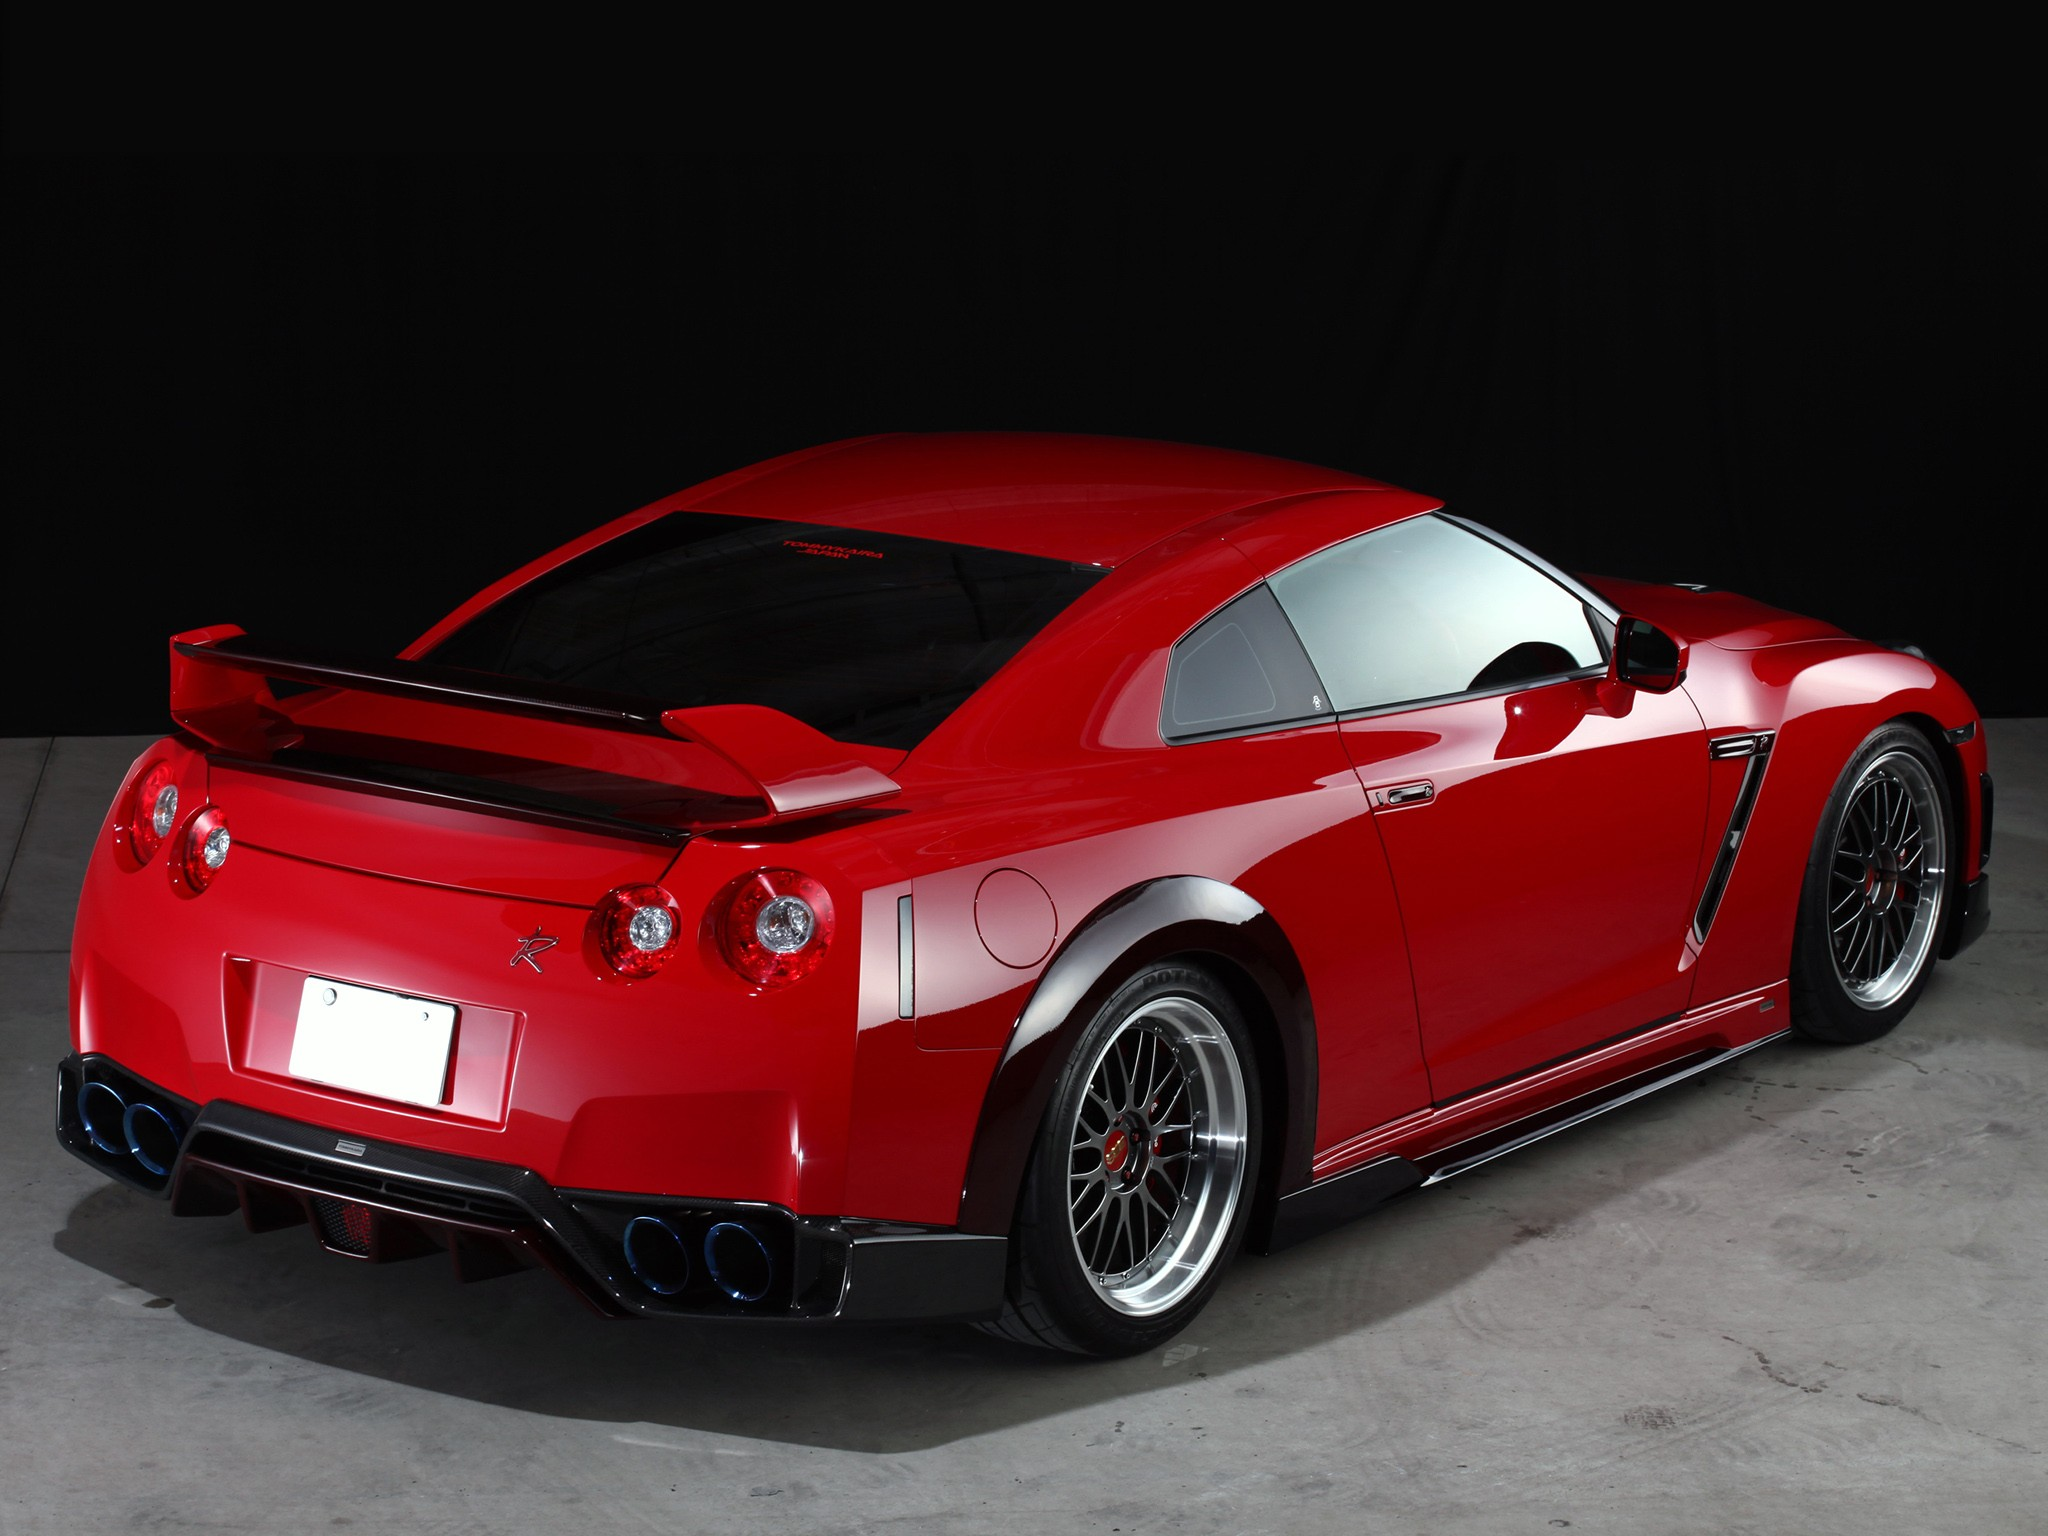 Car photo download instructions for Nissan Skyline Gtr R35 Red: Download this image as desktop background wallpaper in HD resolution for free.